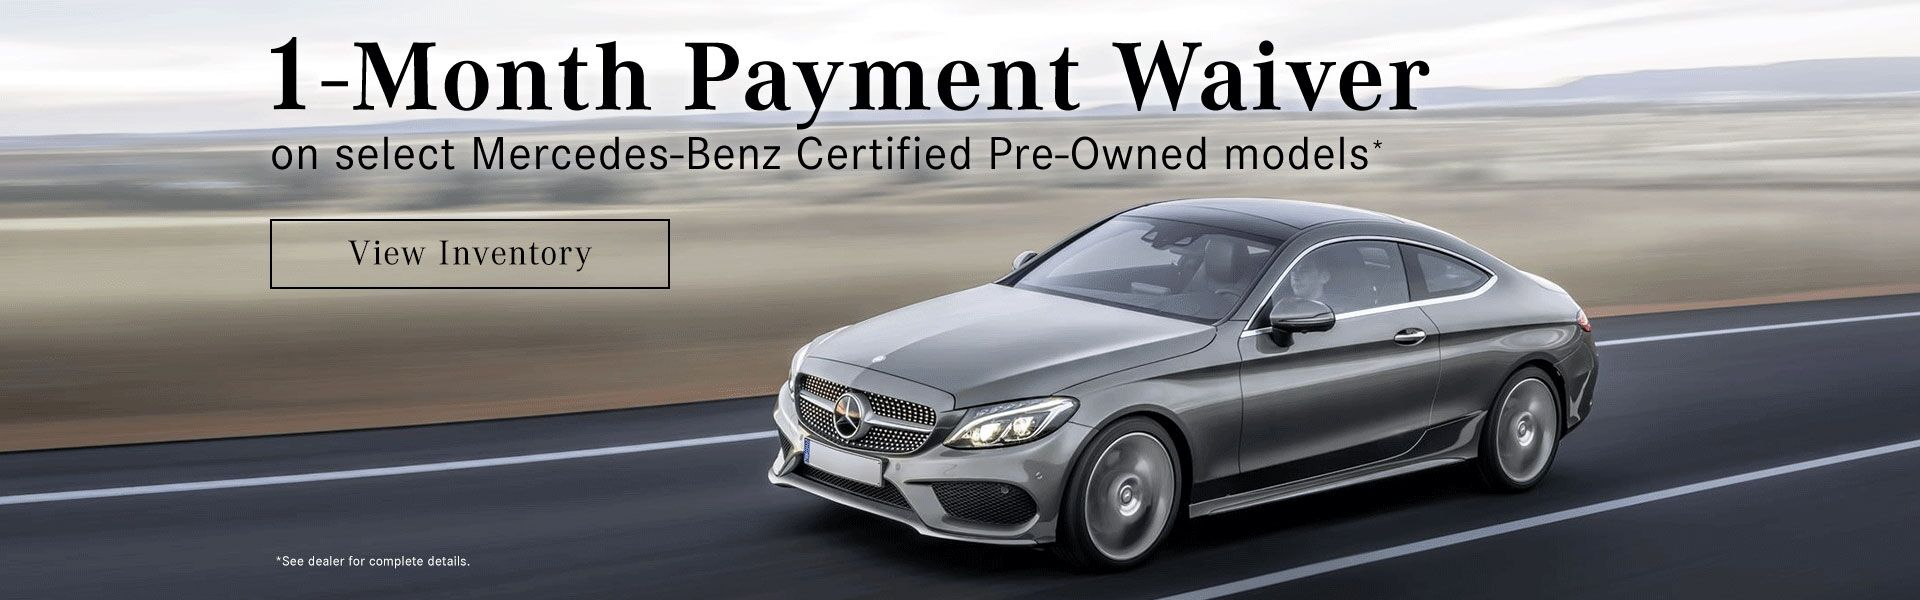 1-Month Payment Waiver